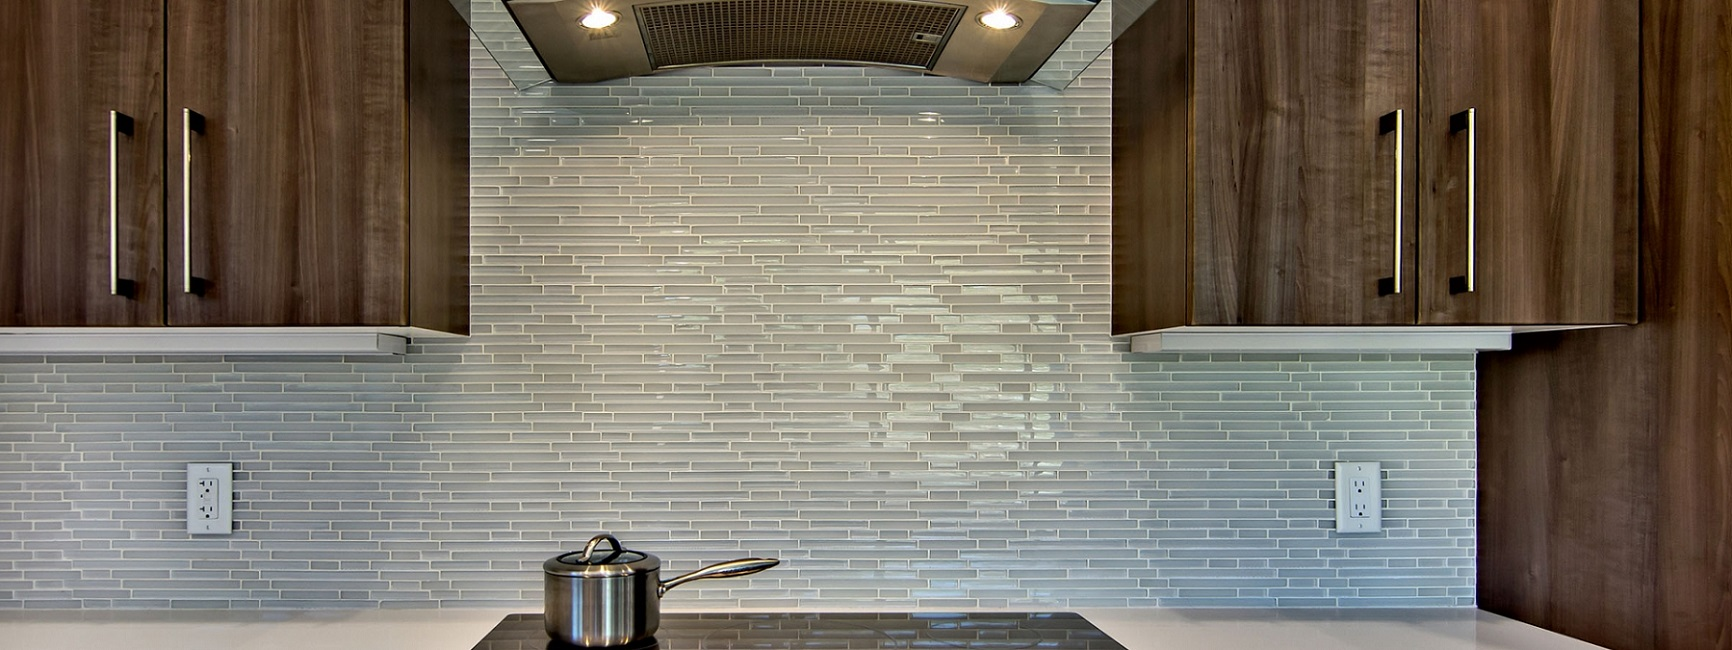 300 kitchen backsplash installation milton mississauga burlington kitchen backsplash installation milton dailygadgetfo Images